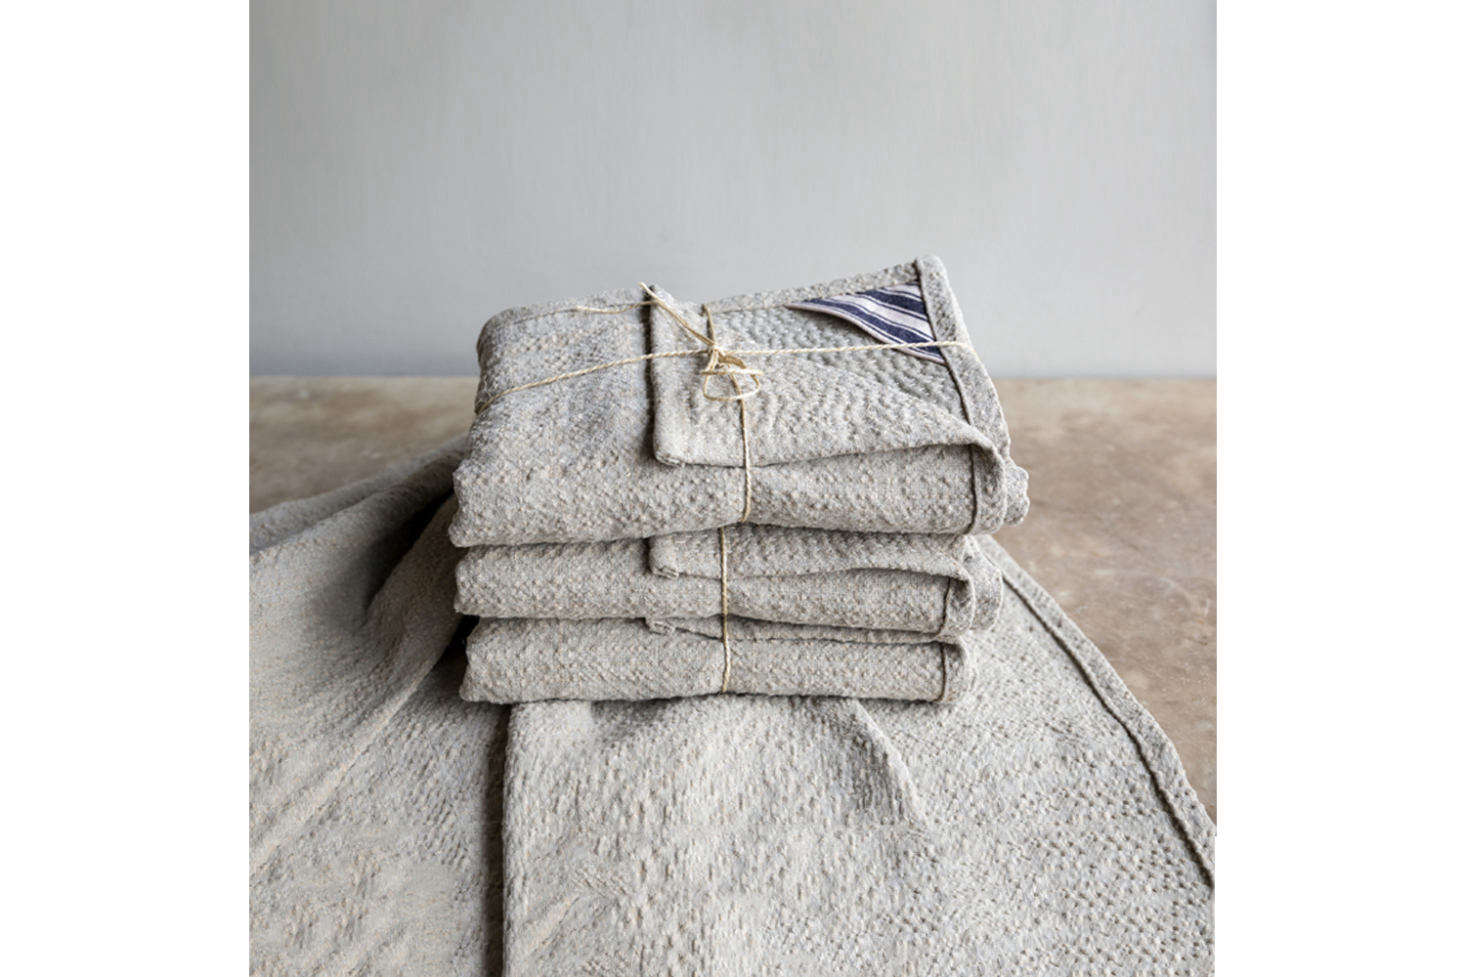 The Hand-Stitched Sashiko Linen Towels are made from a rough linen and jute blend and available at Howe.Contact for price and ordering information.